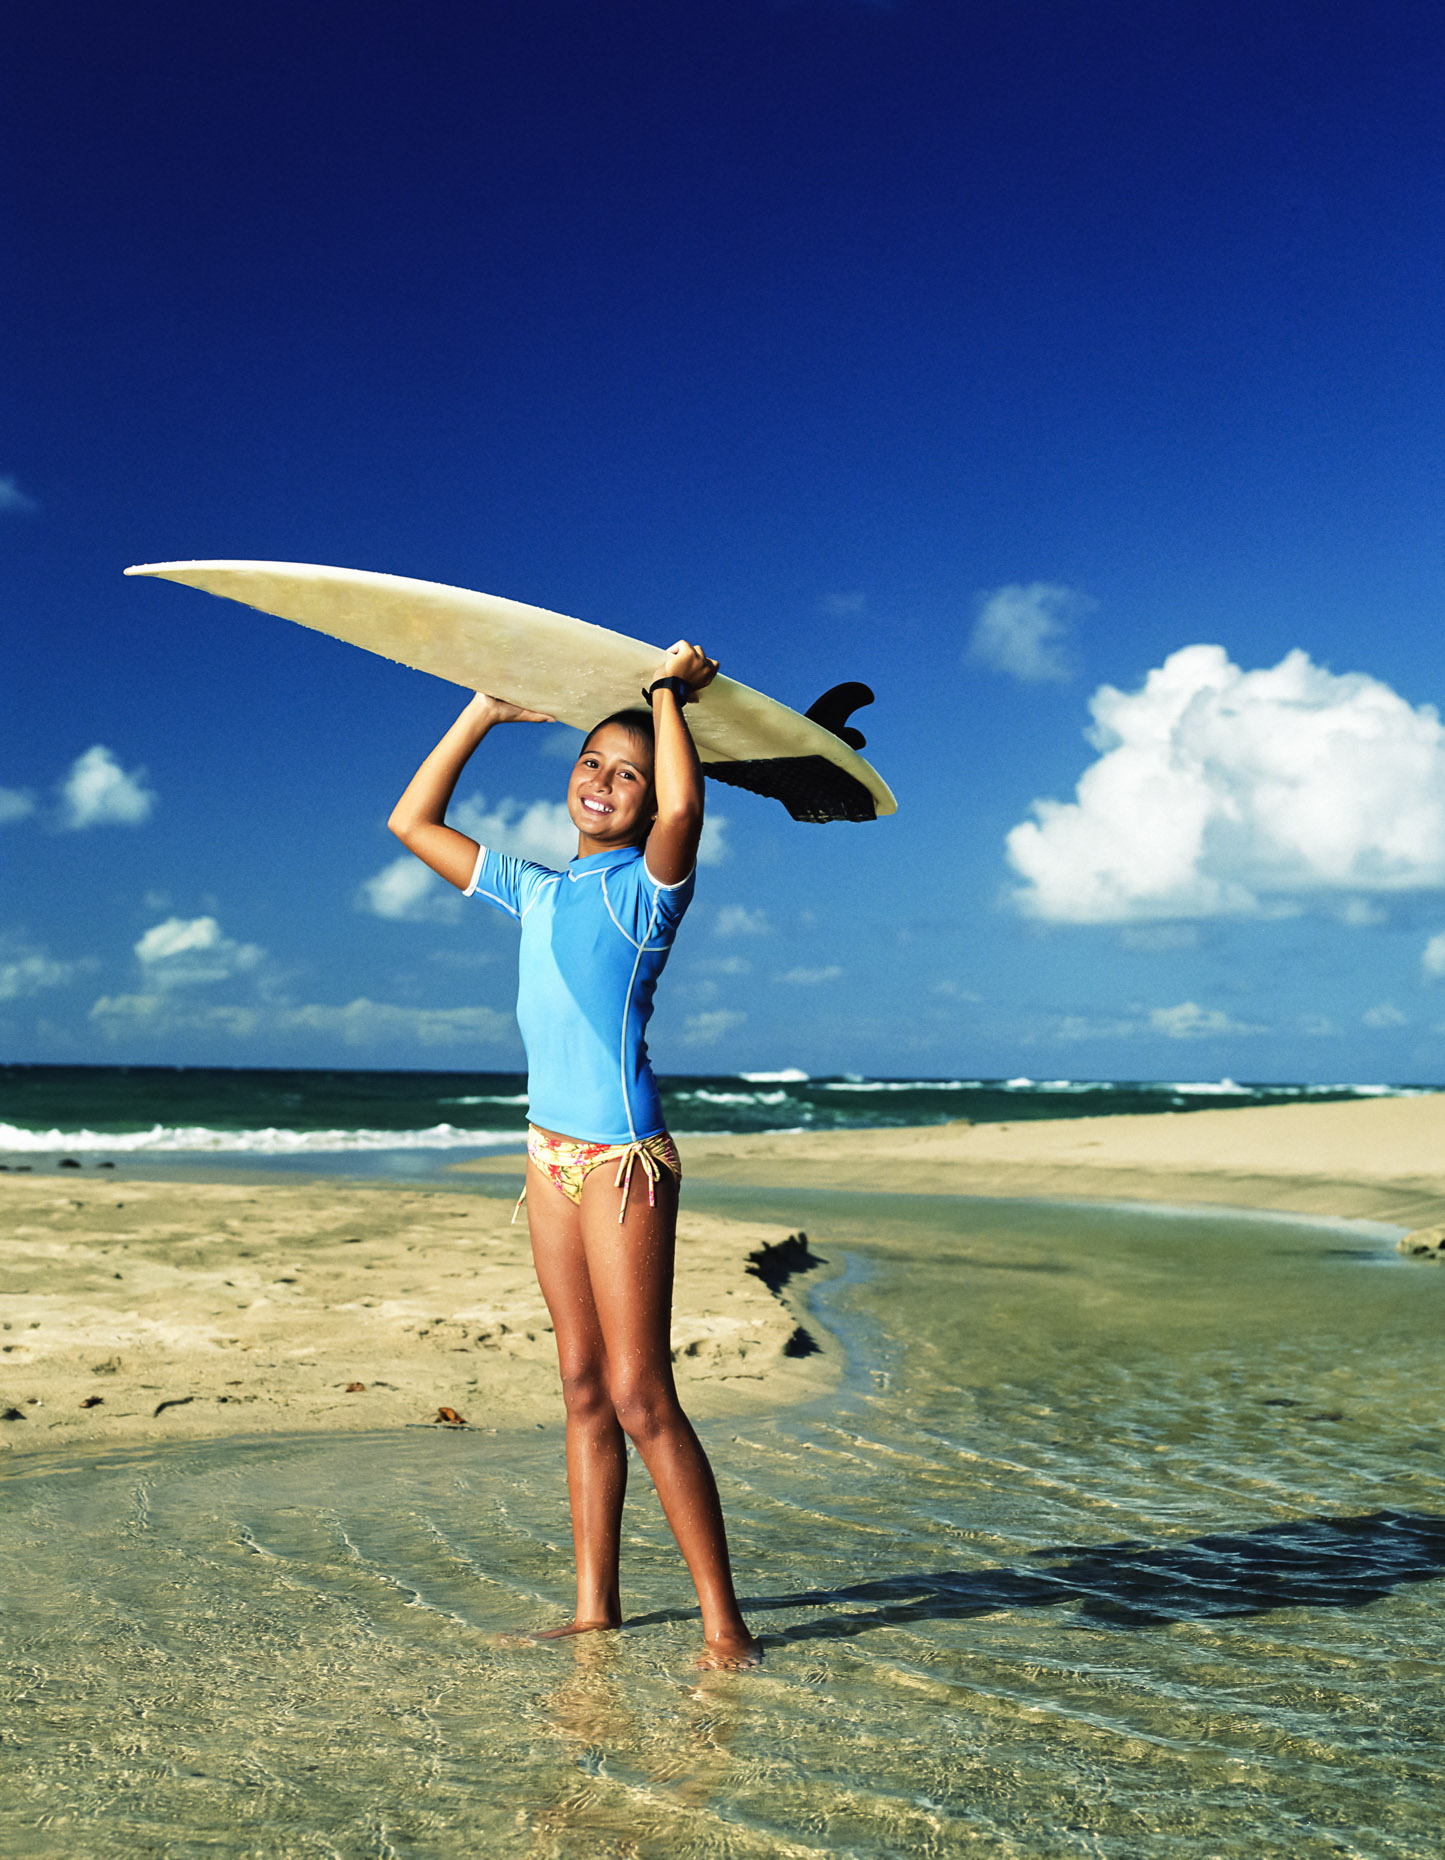 Young girl (8-14 years old) holds a Surfboard over her head near Hanalei, Kauai, HI.